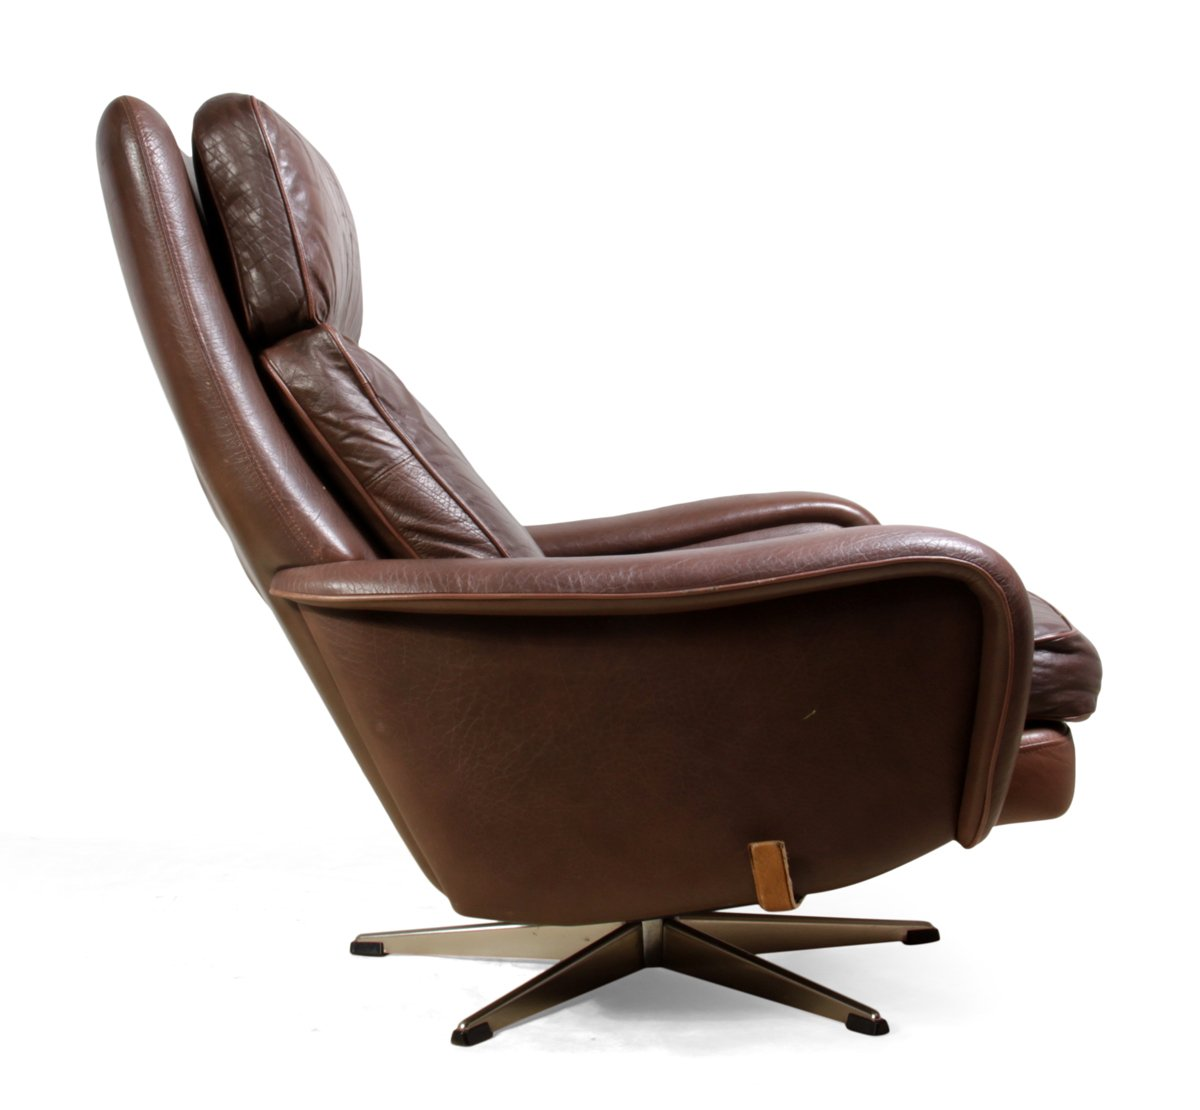 Man Cave Recliner Chairs : Danish leather reclining swivel man cave chair s for